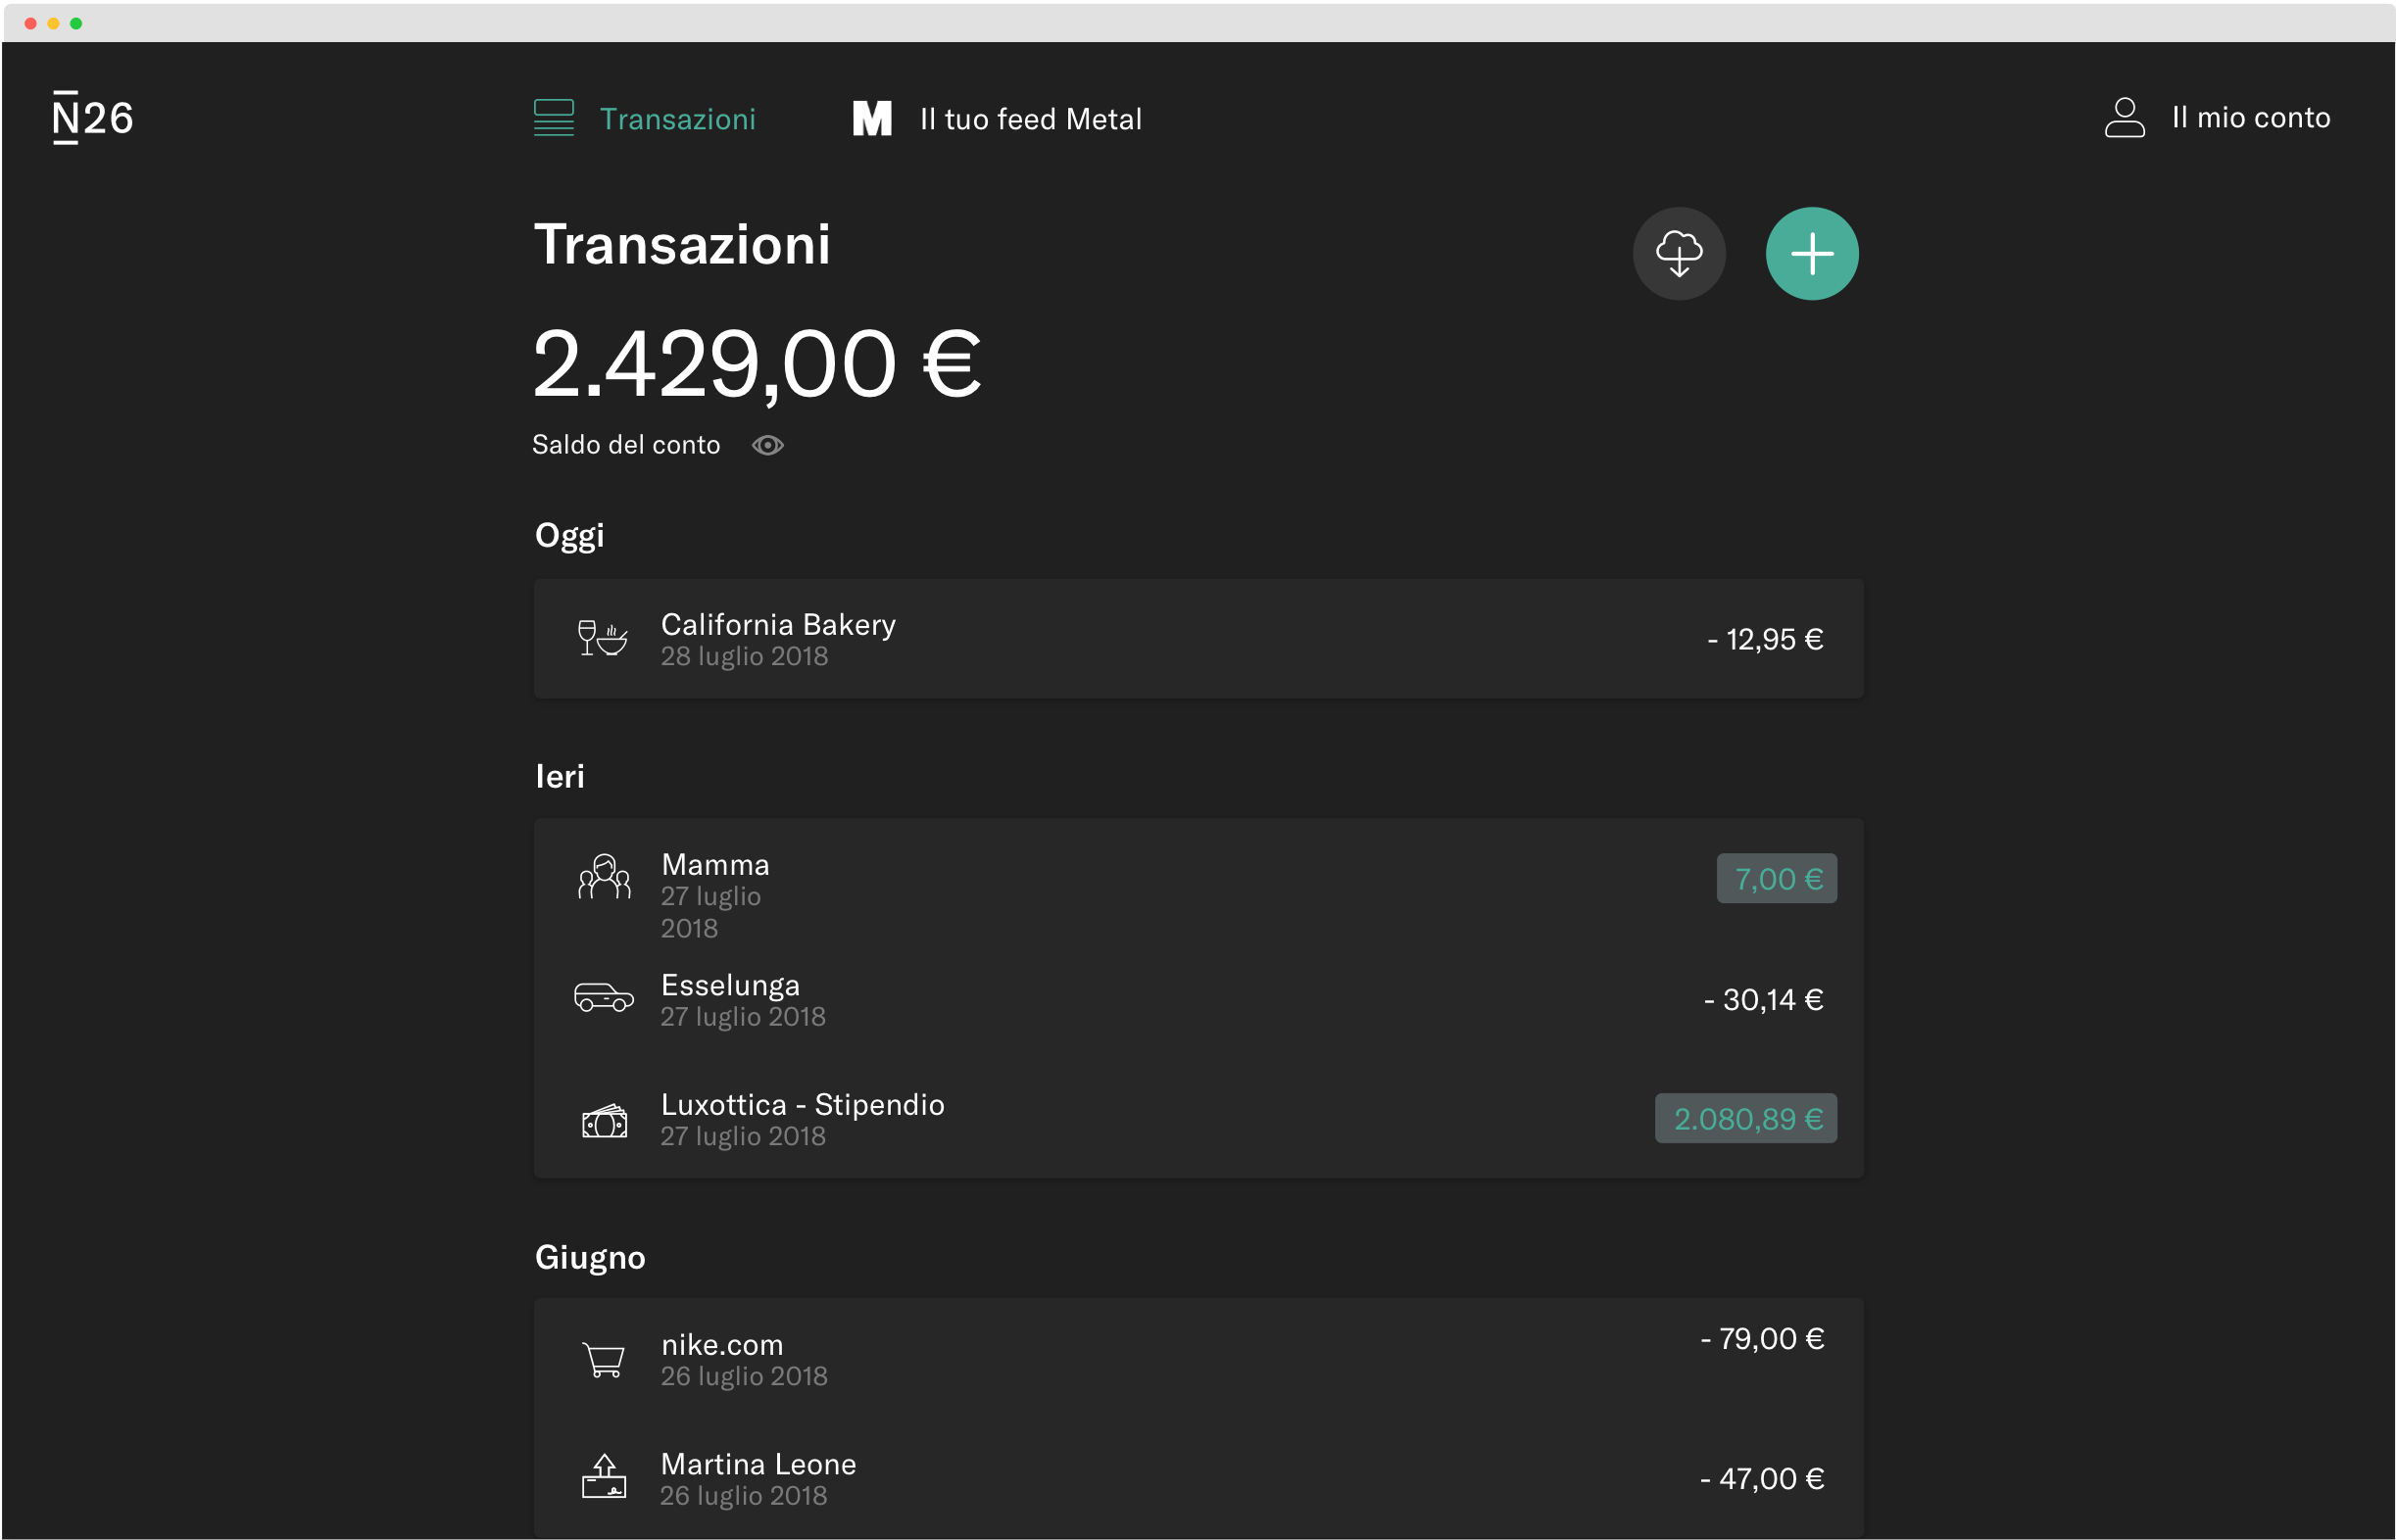 N26 - Tema scuro dell'app web.